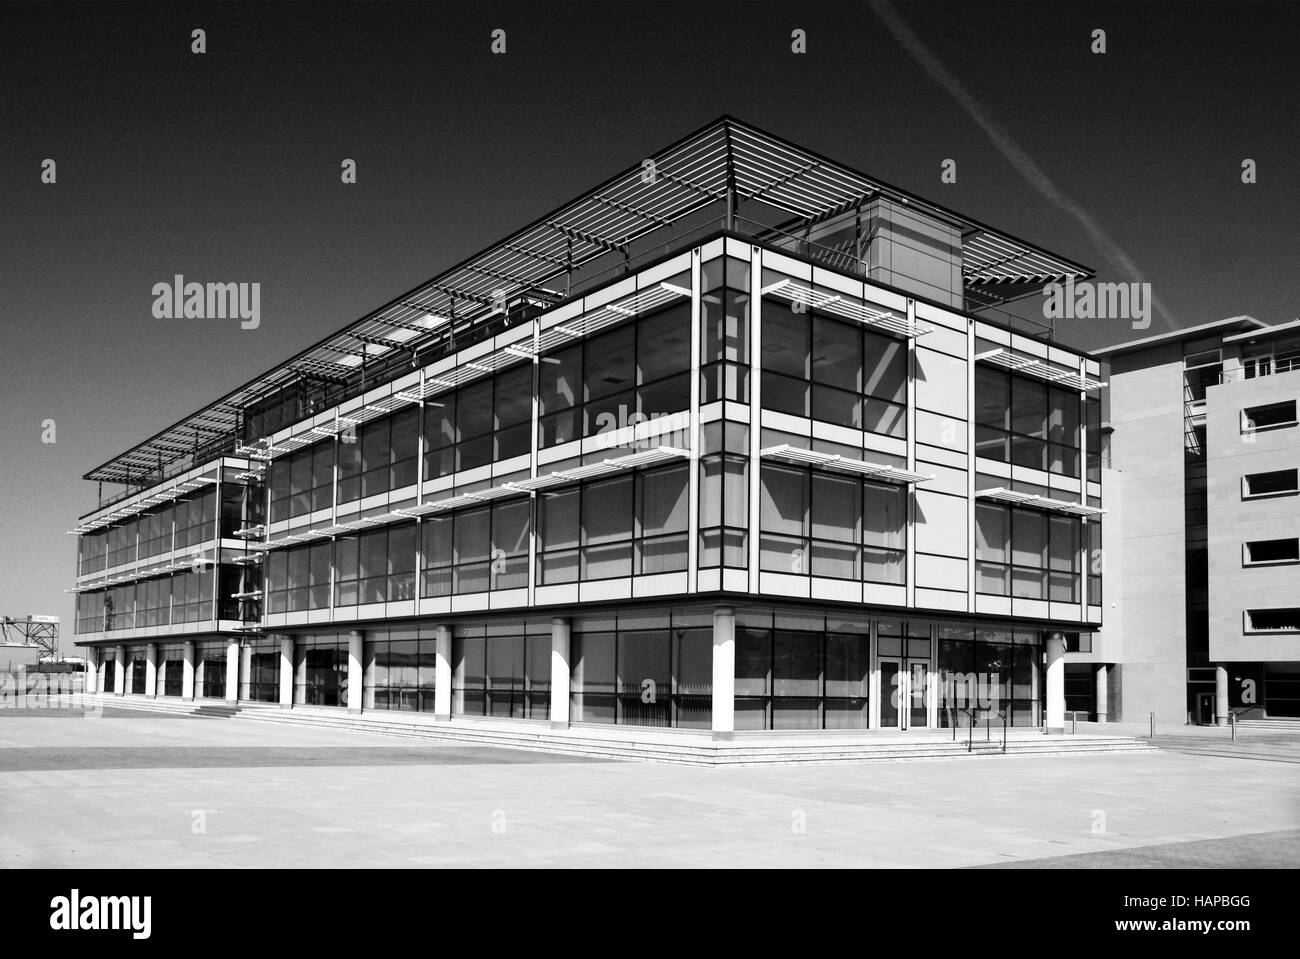 modern office, glass and steel construction - Stock Image